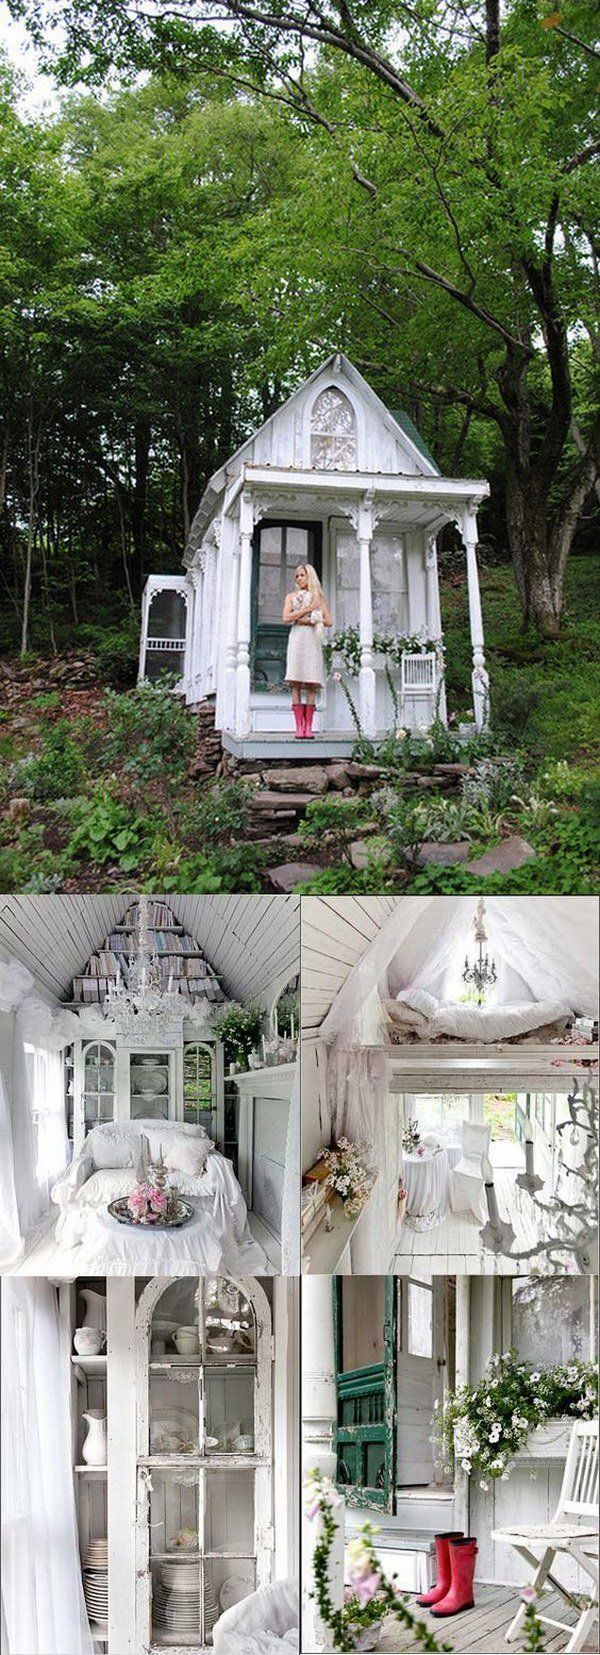 5355 Best Sheds Tiny Homes And Shelter Images On Pinterest Garden Sheds Architecture And